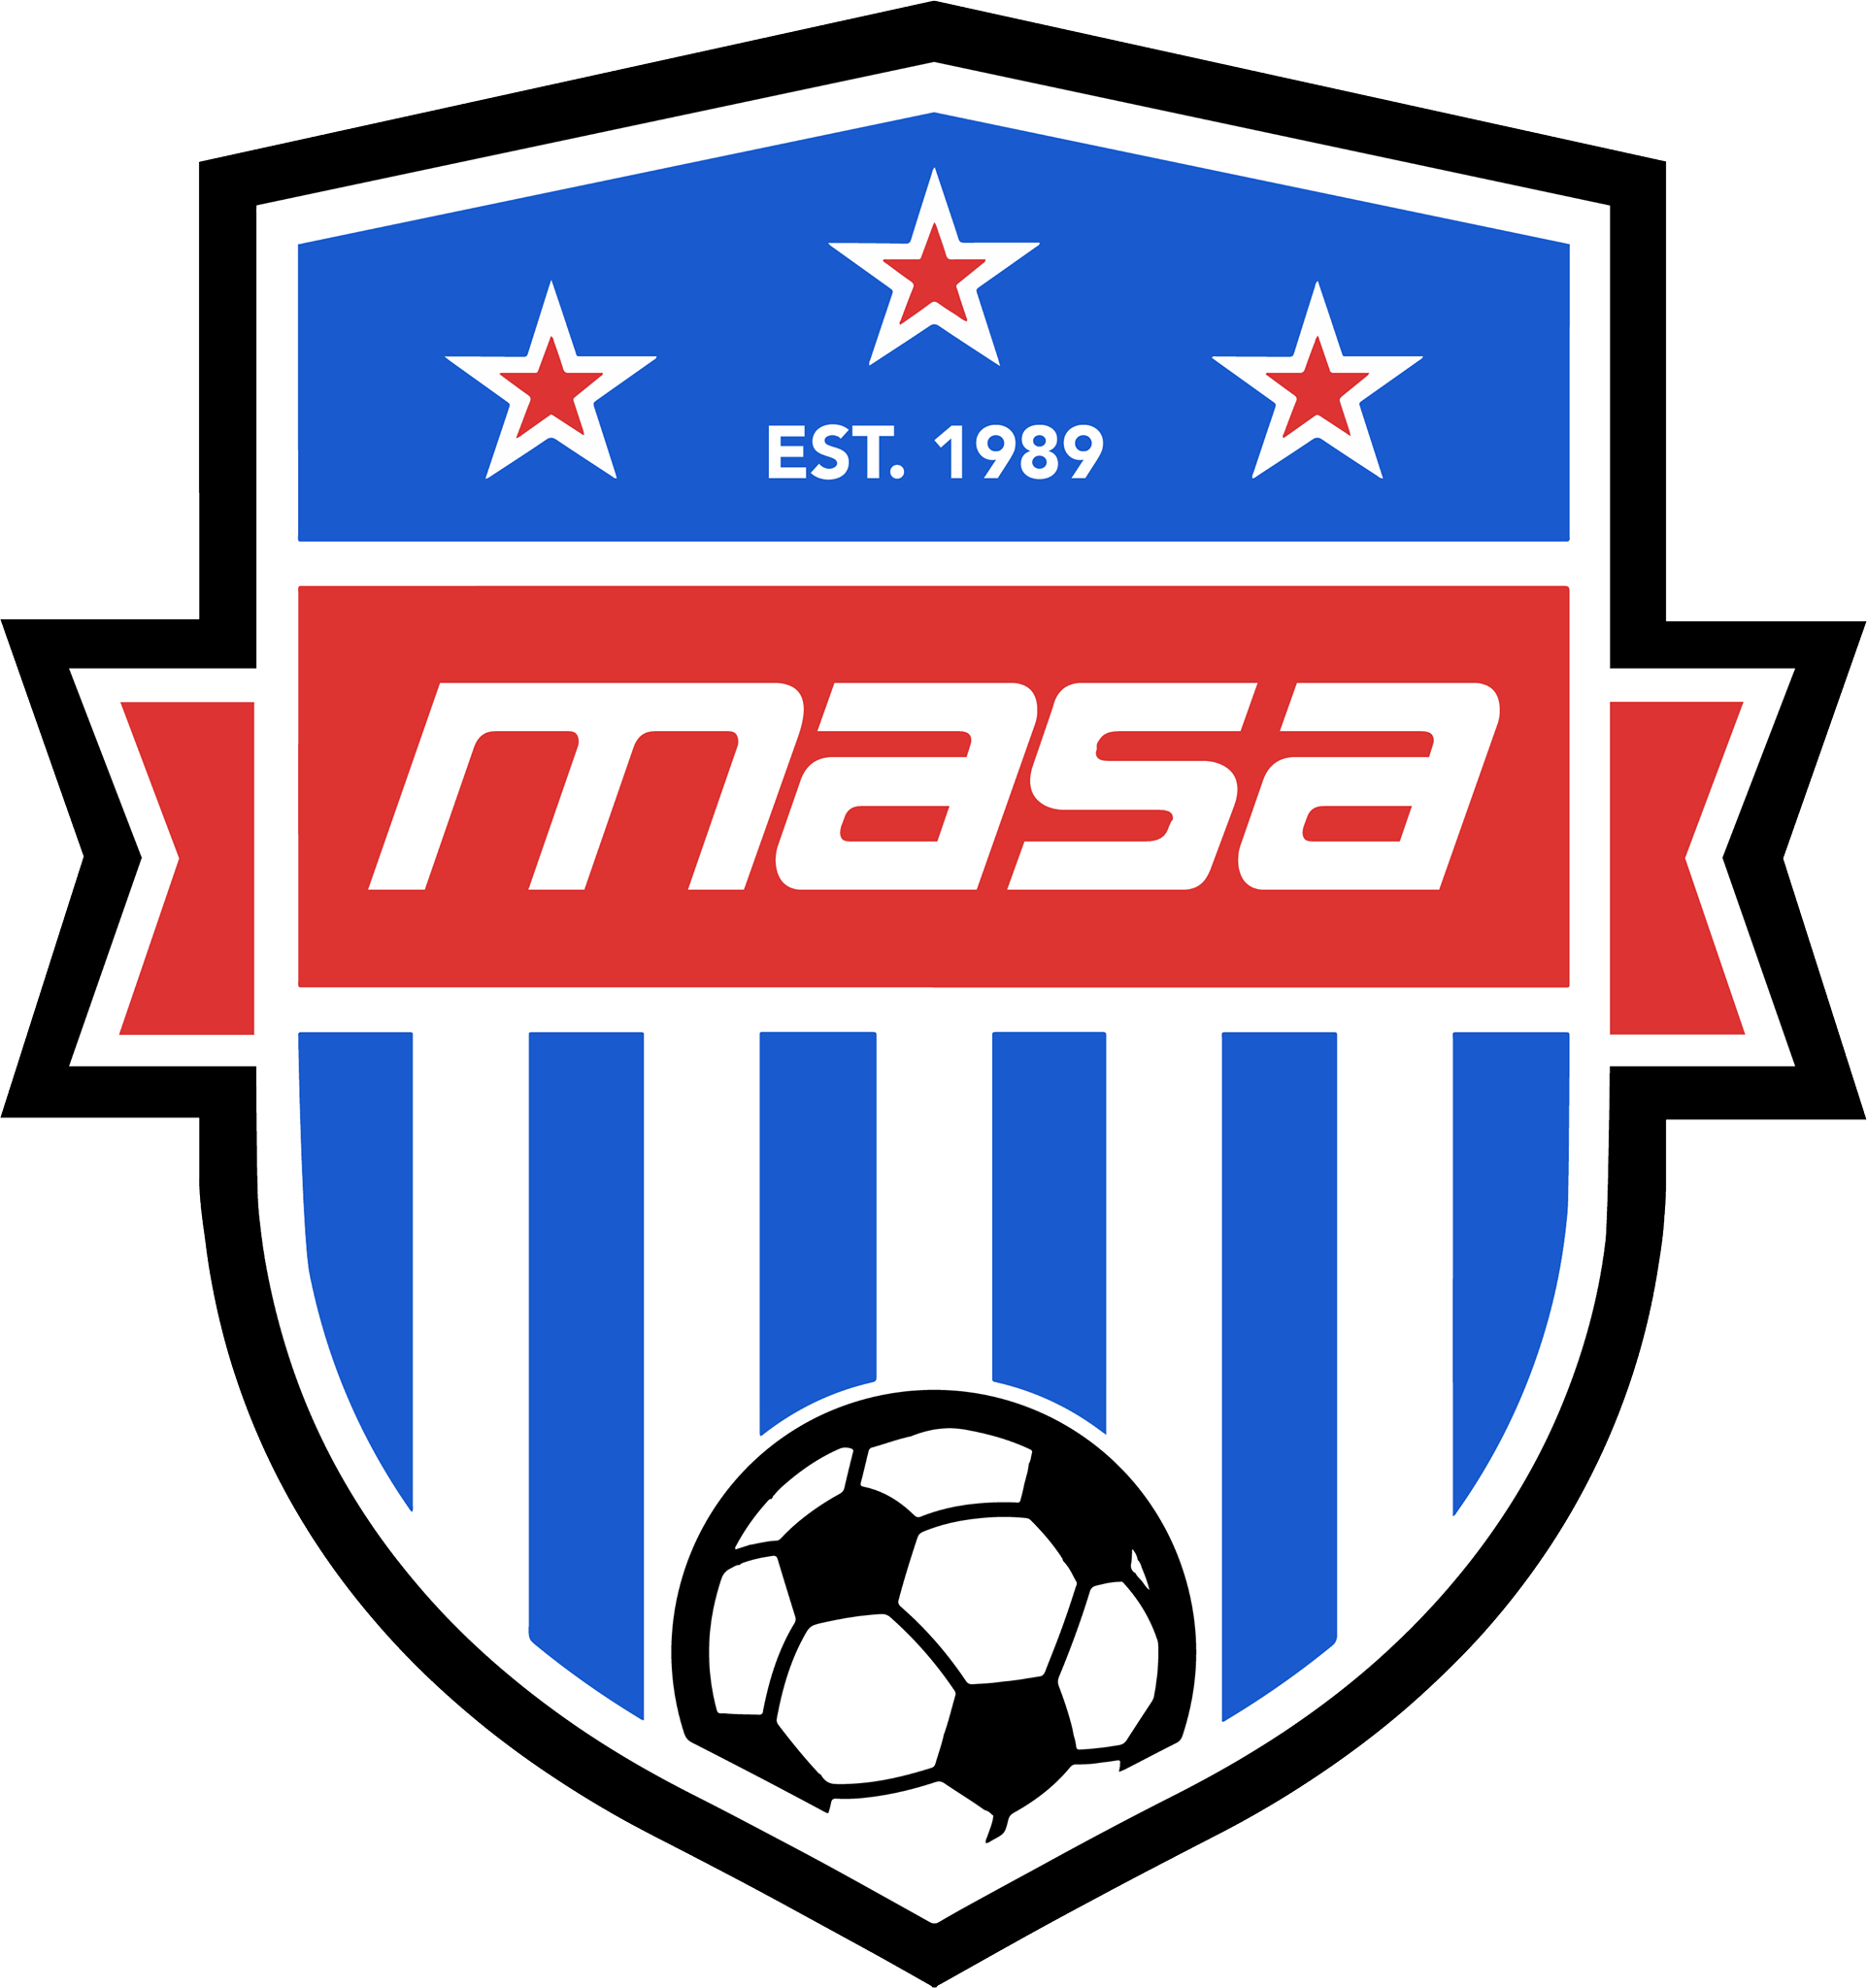 moberlysoccer.org